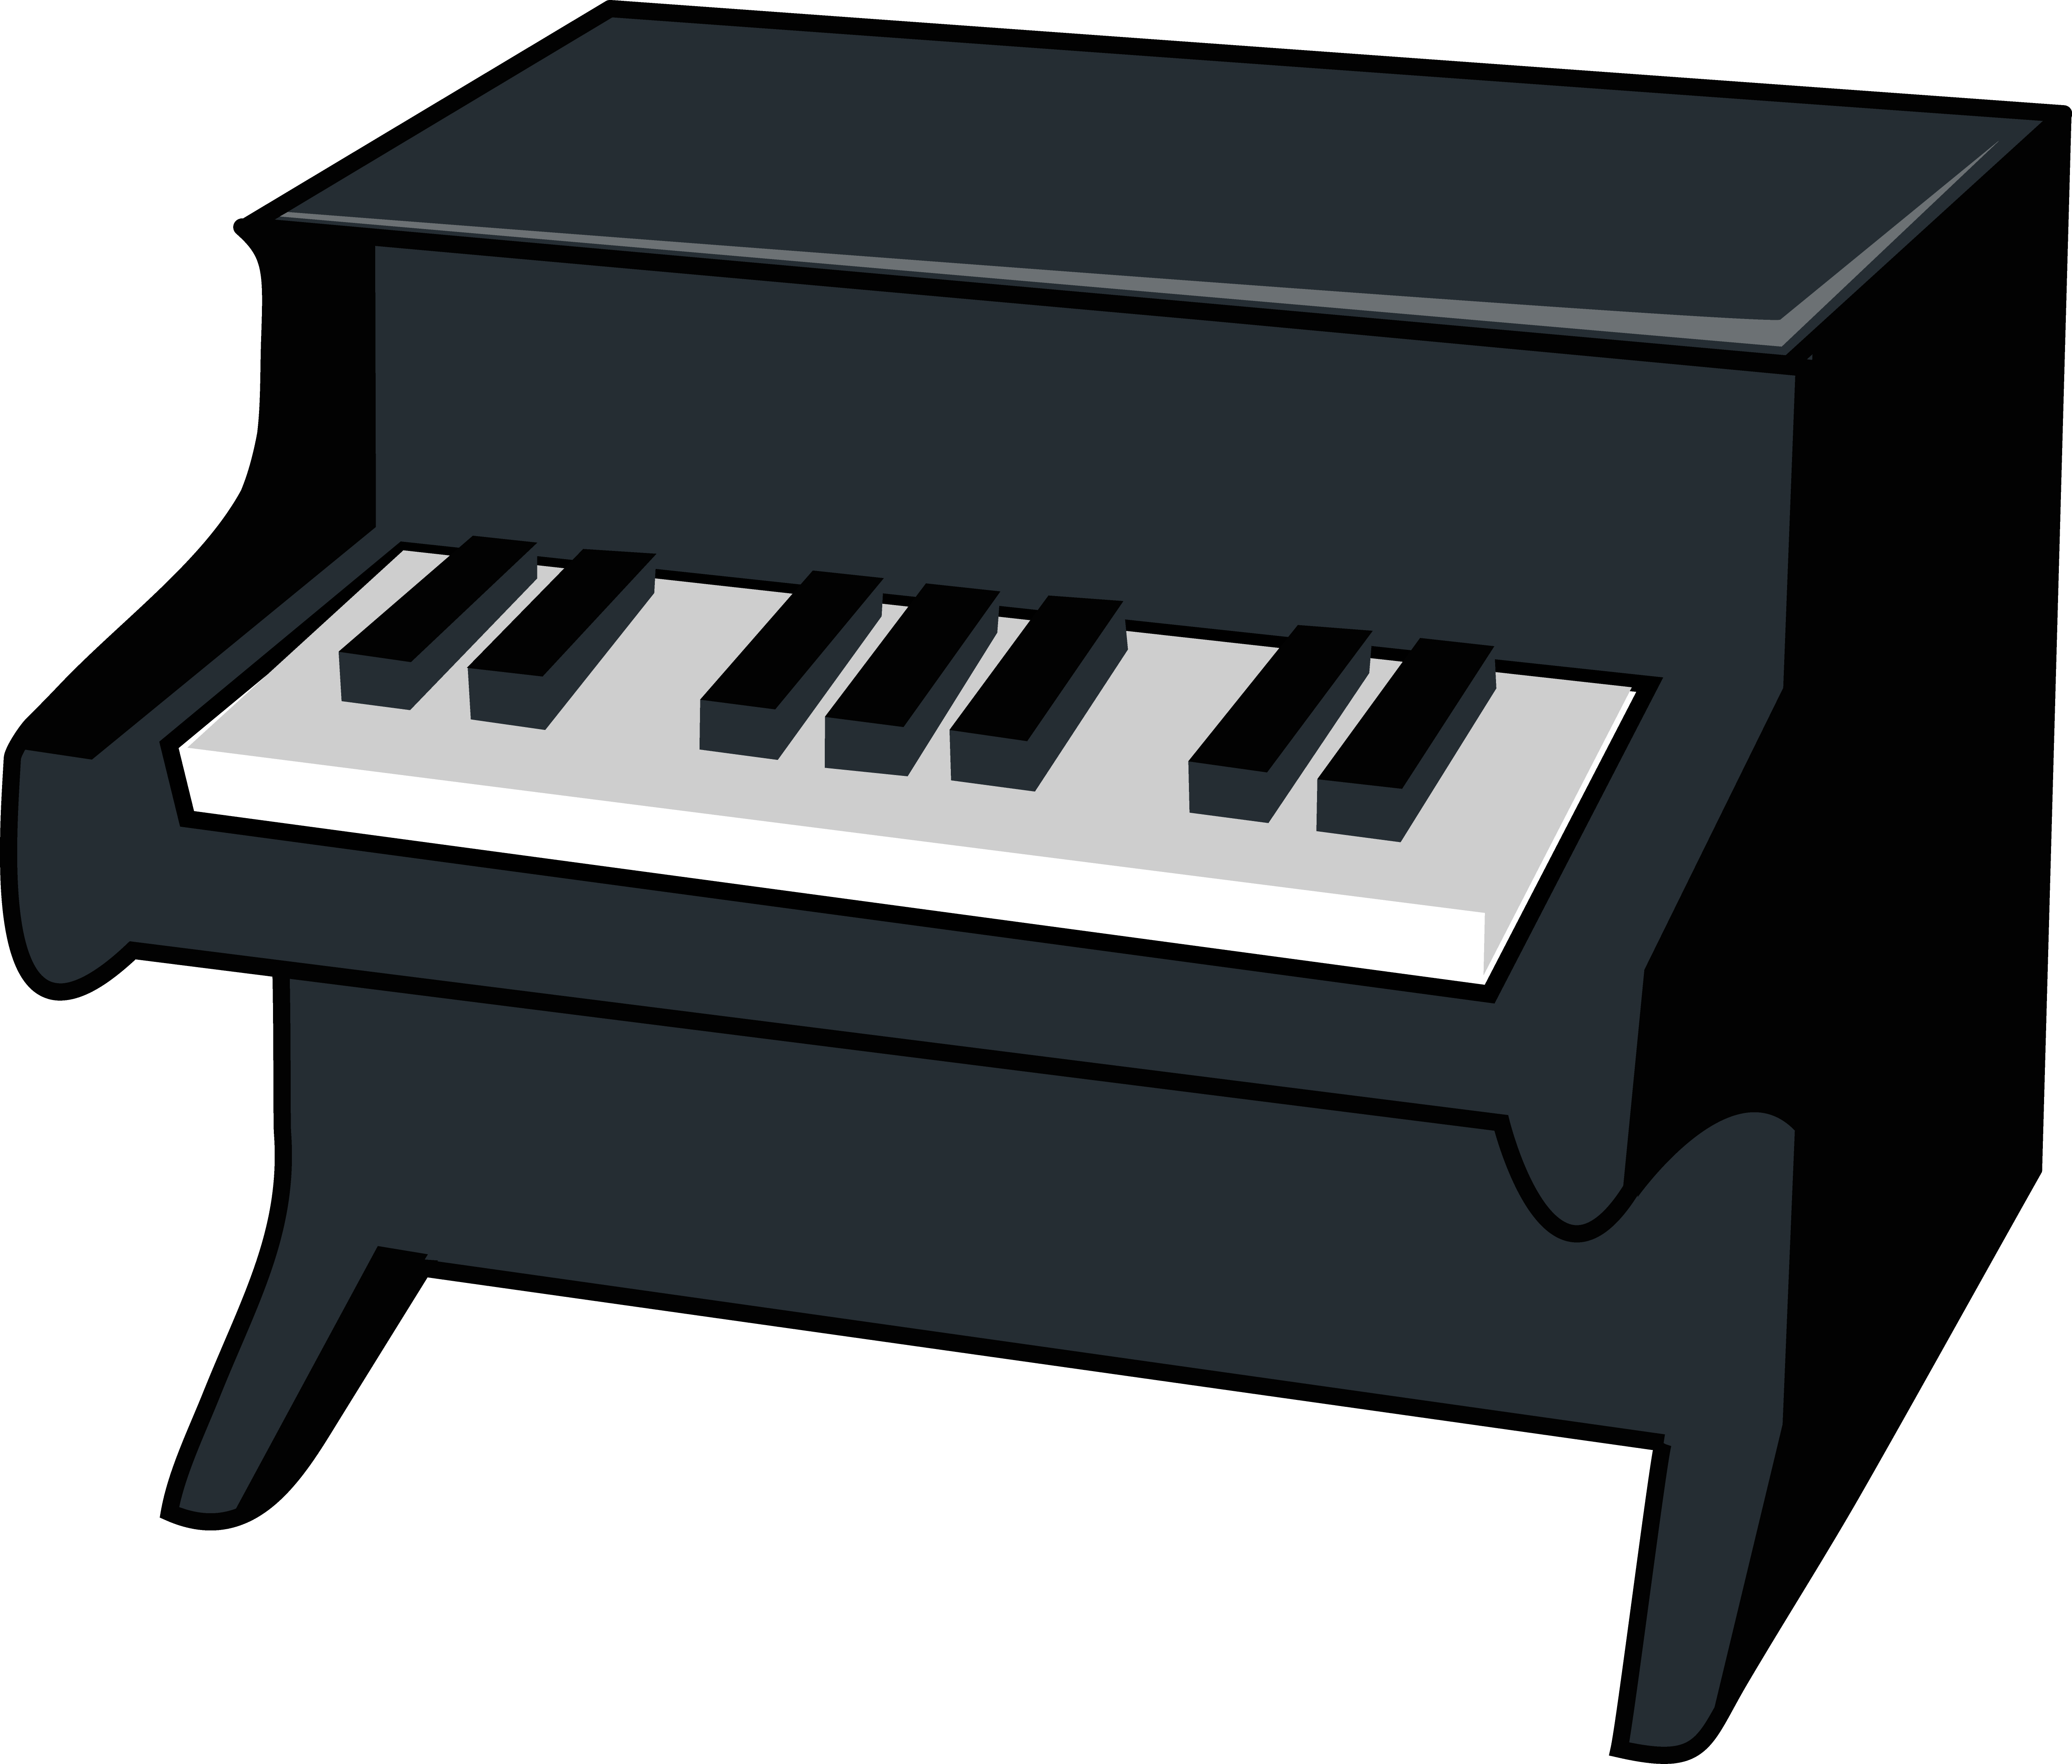 Piano clipart #1, Download drawings